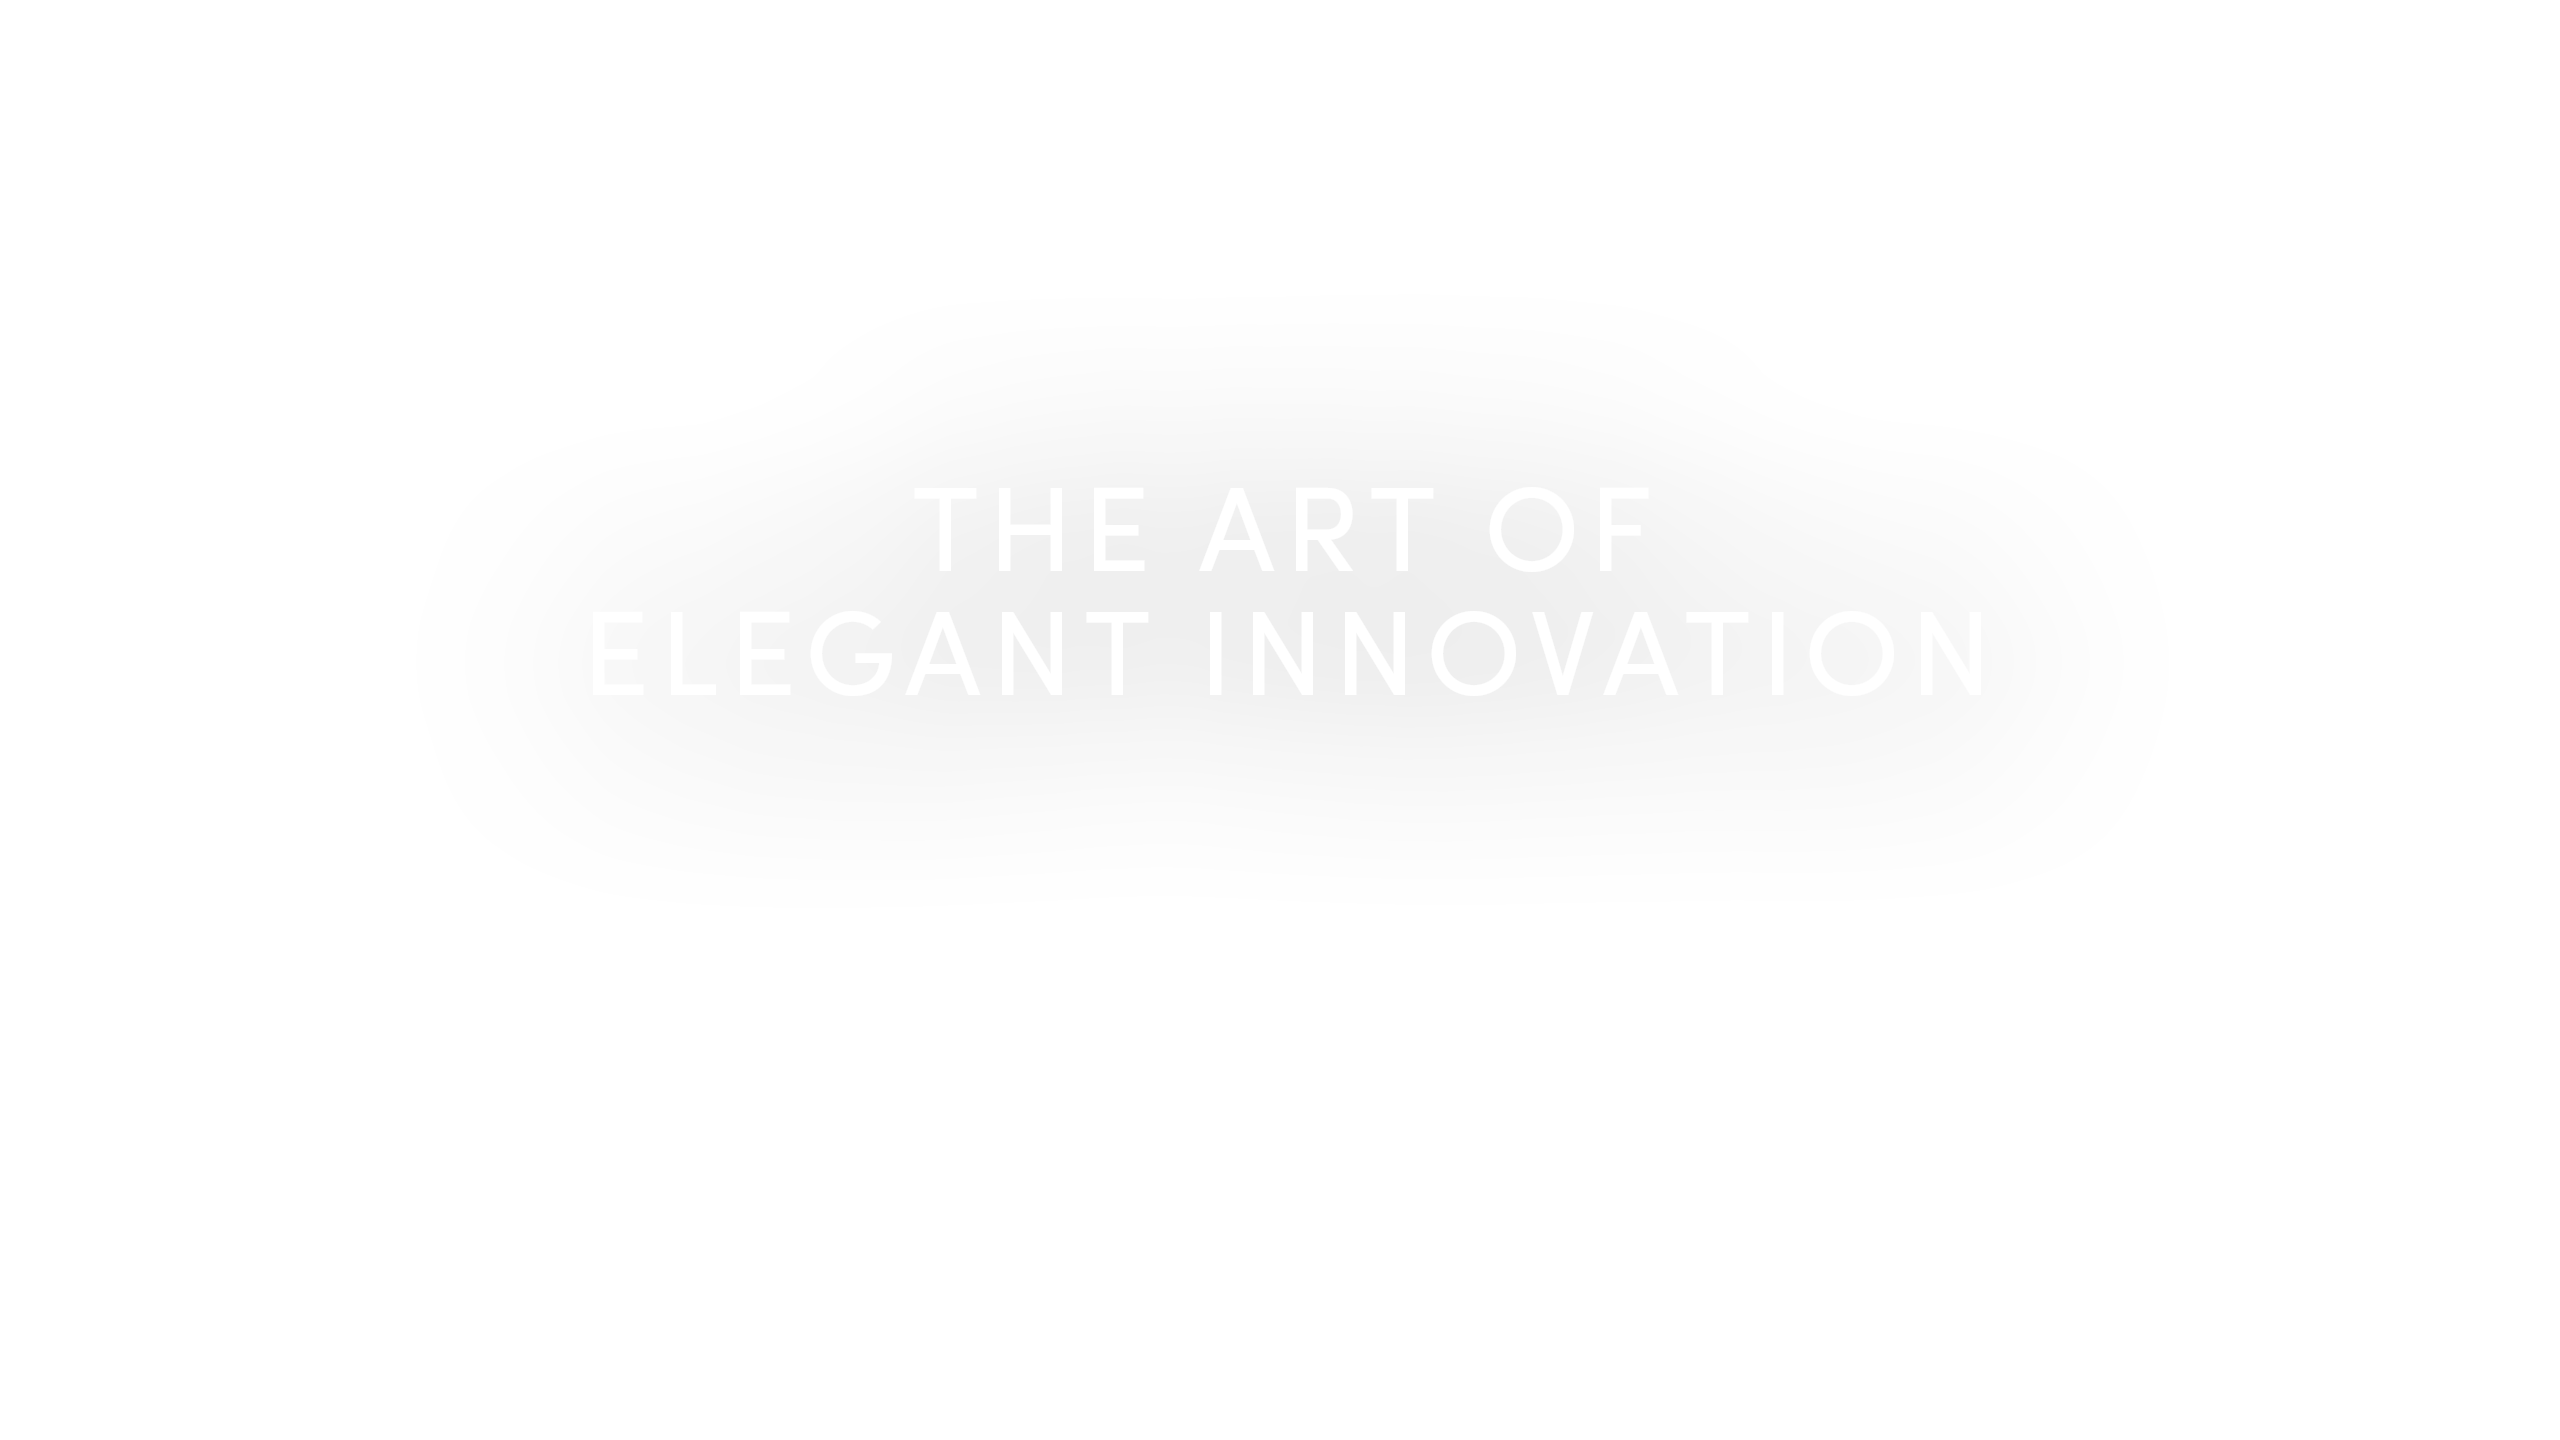 THE ART OF ELEGANT INNOVATION